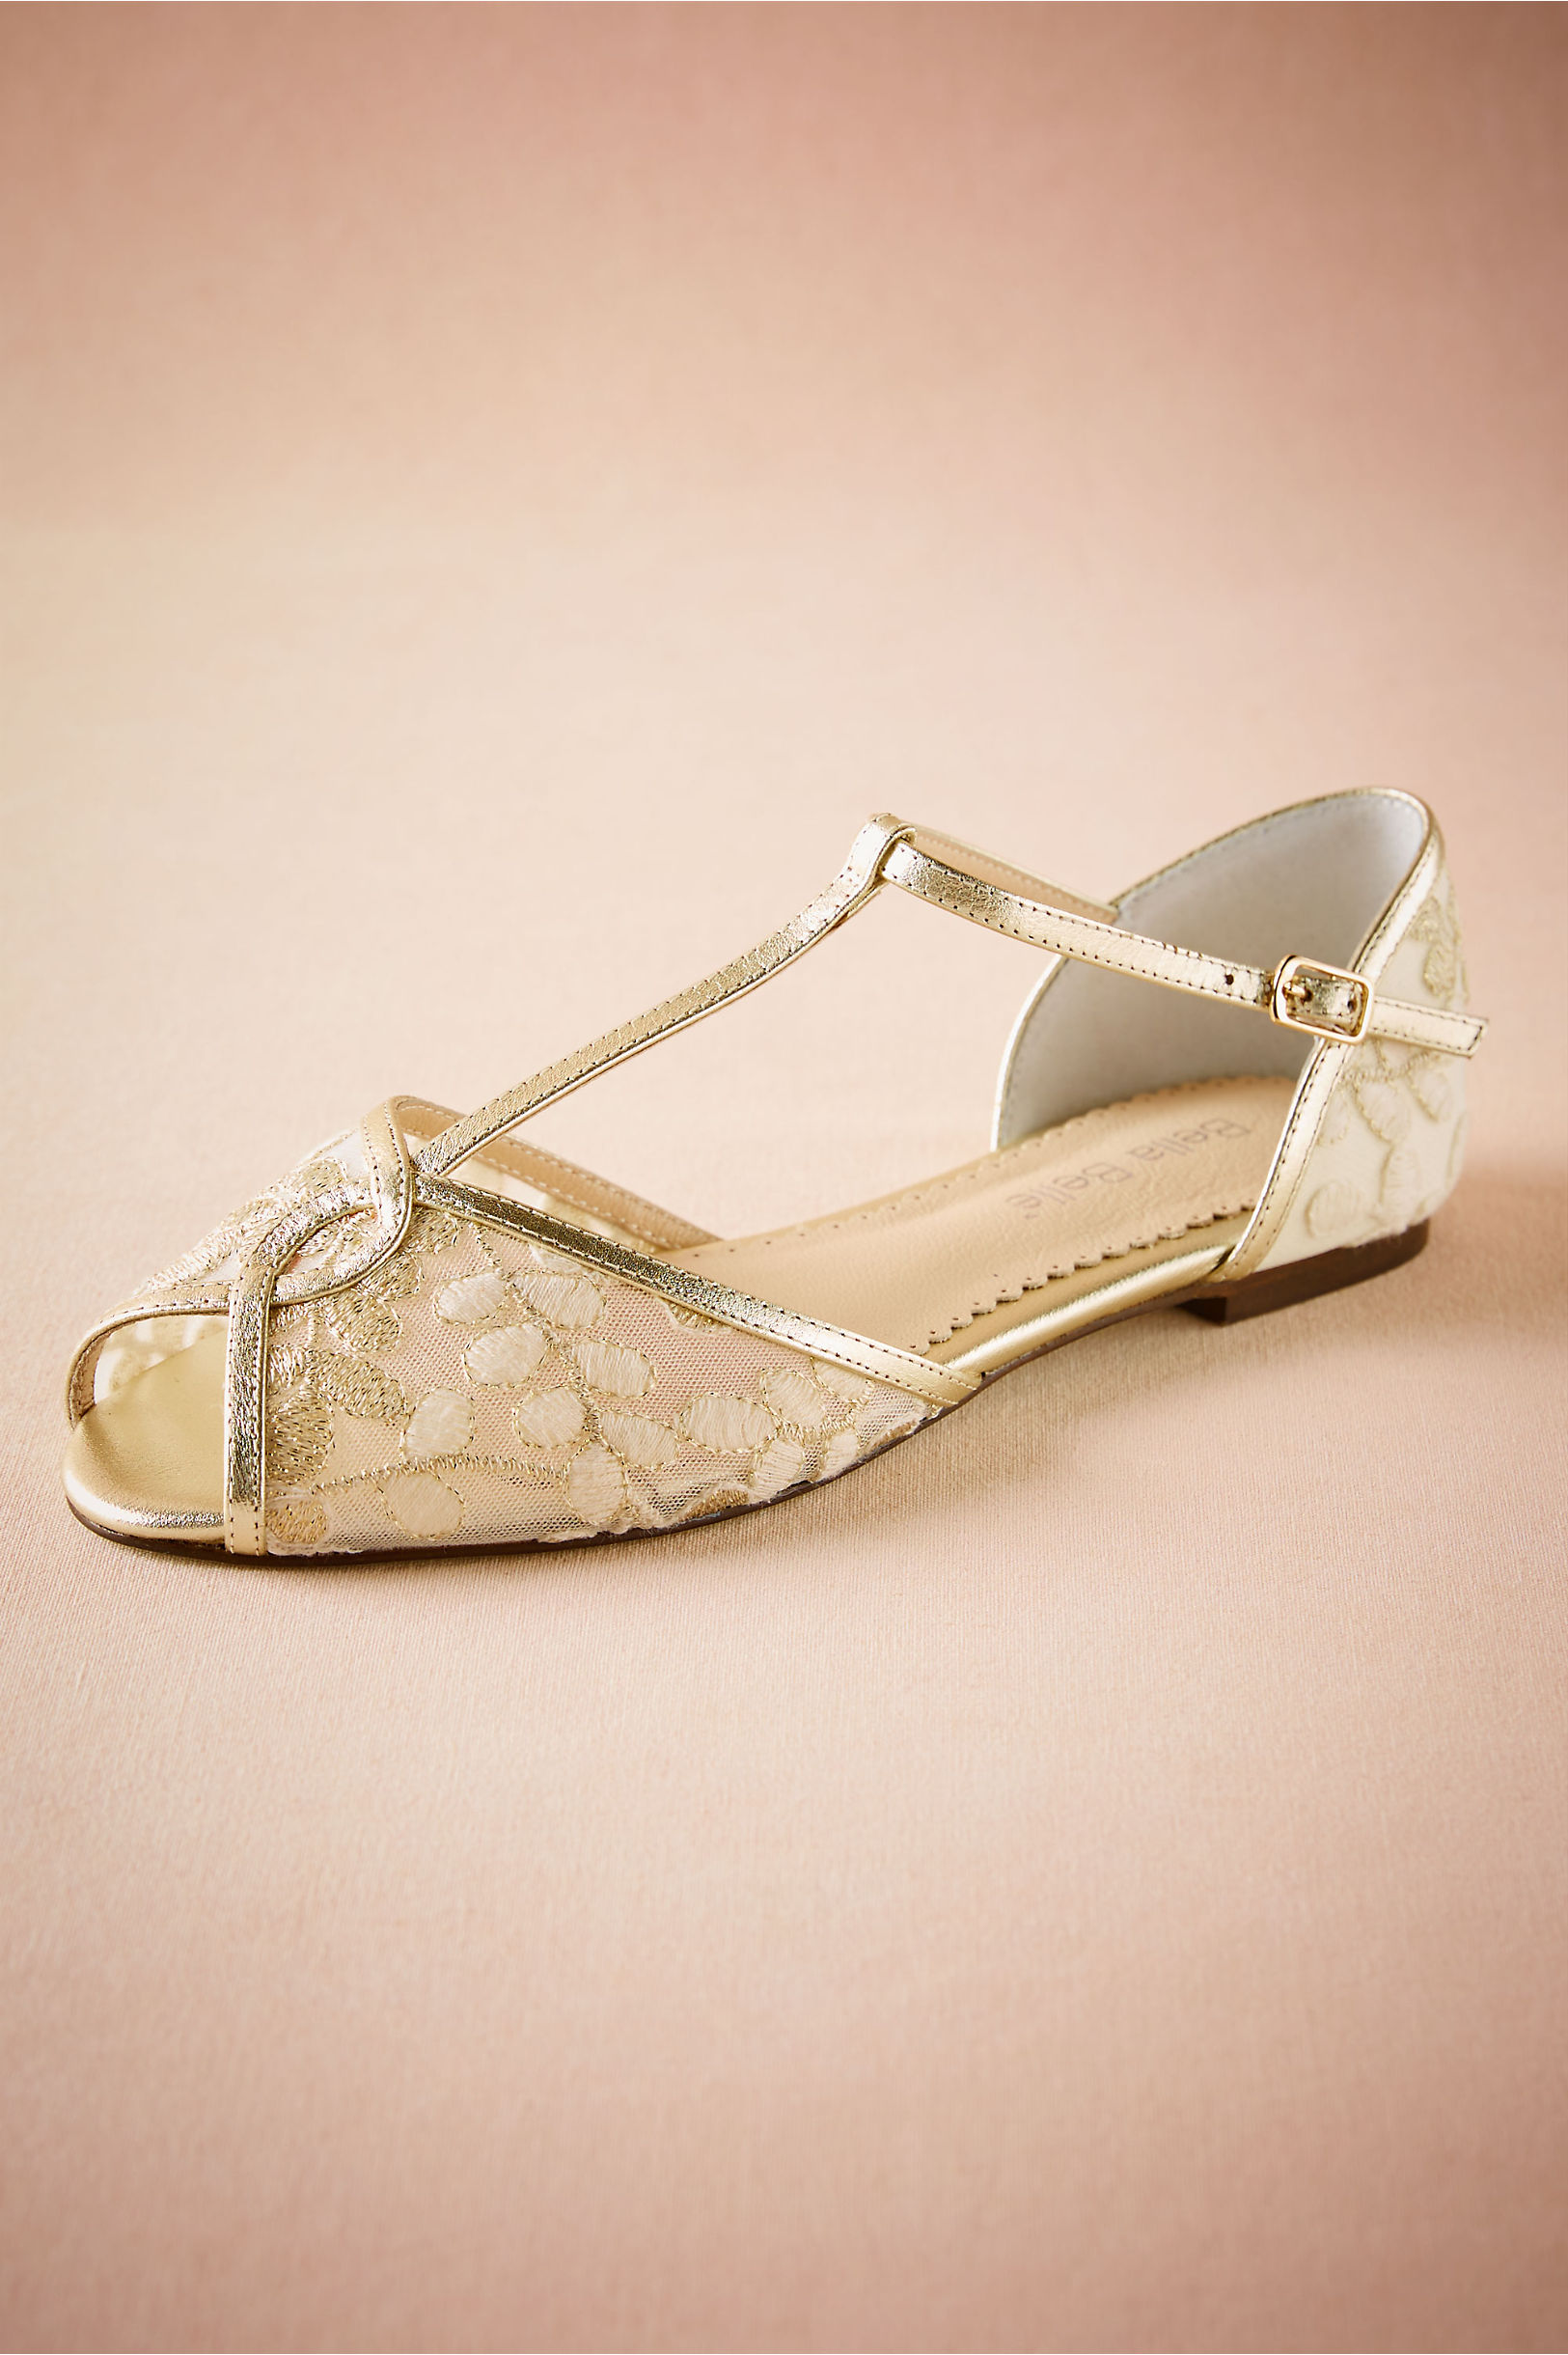 1940s Style Wedding Dresses | Classic Wedding Dresses Maisie Embroidered T-Strap Flats $190.00 AT vintagedancer.com